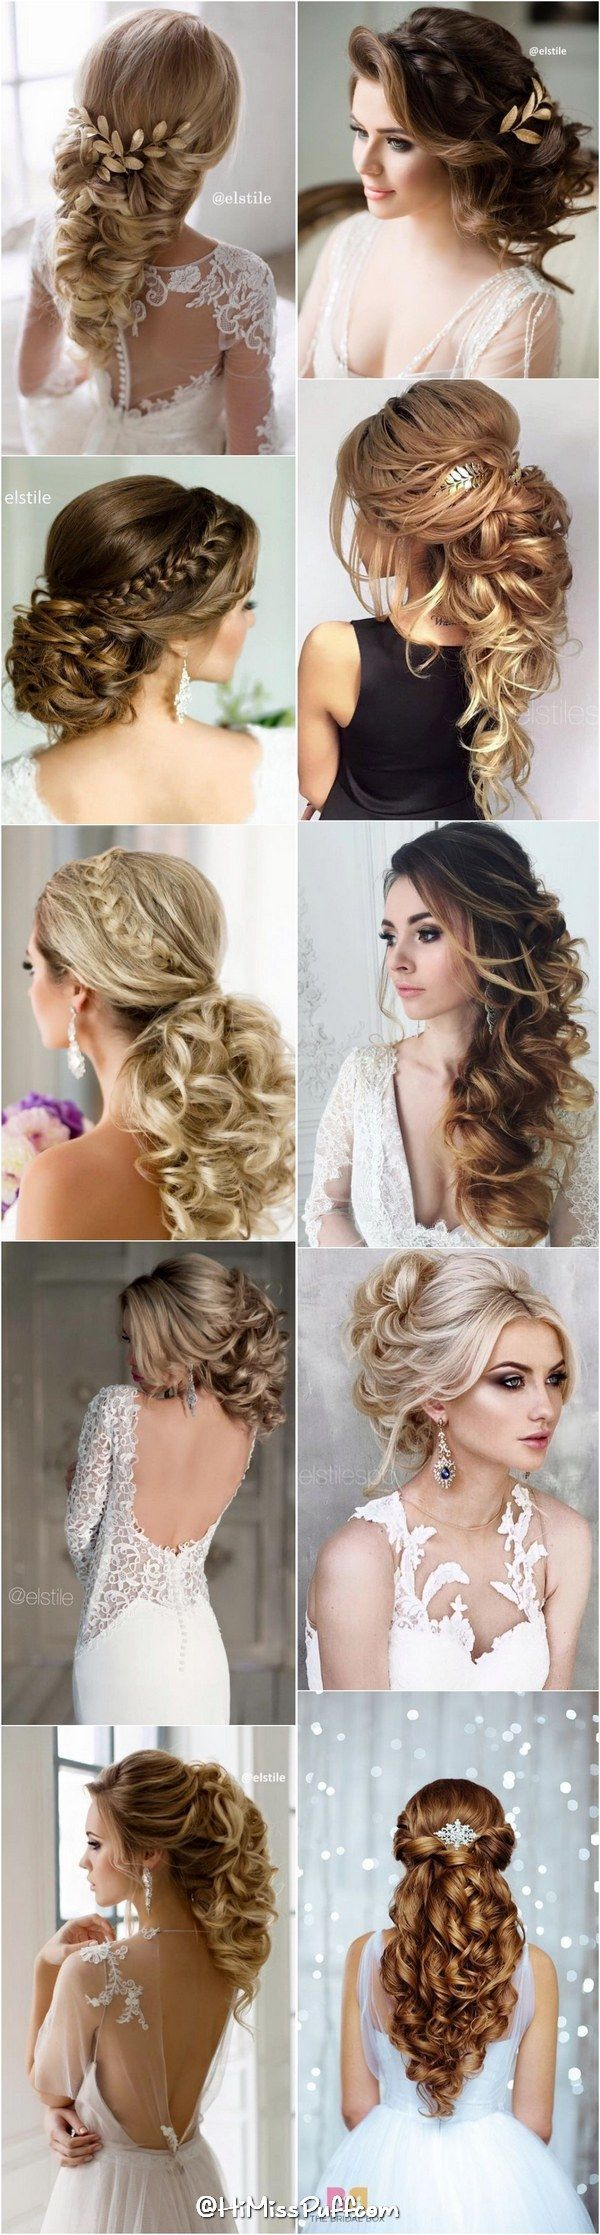 best 20+ track hairstyles ideas on pinterest | soccer hairstyles